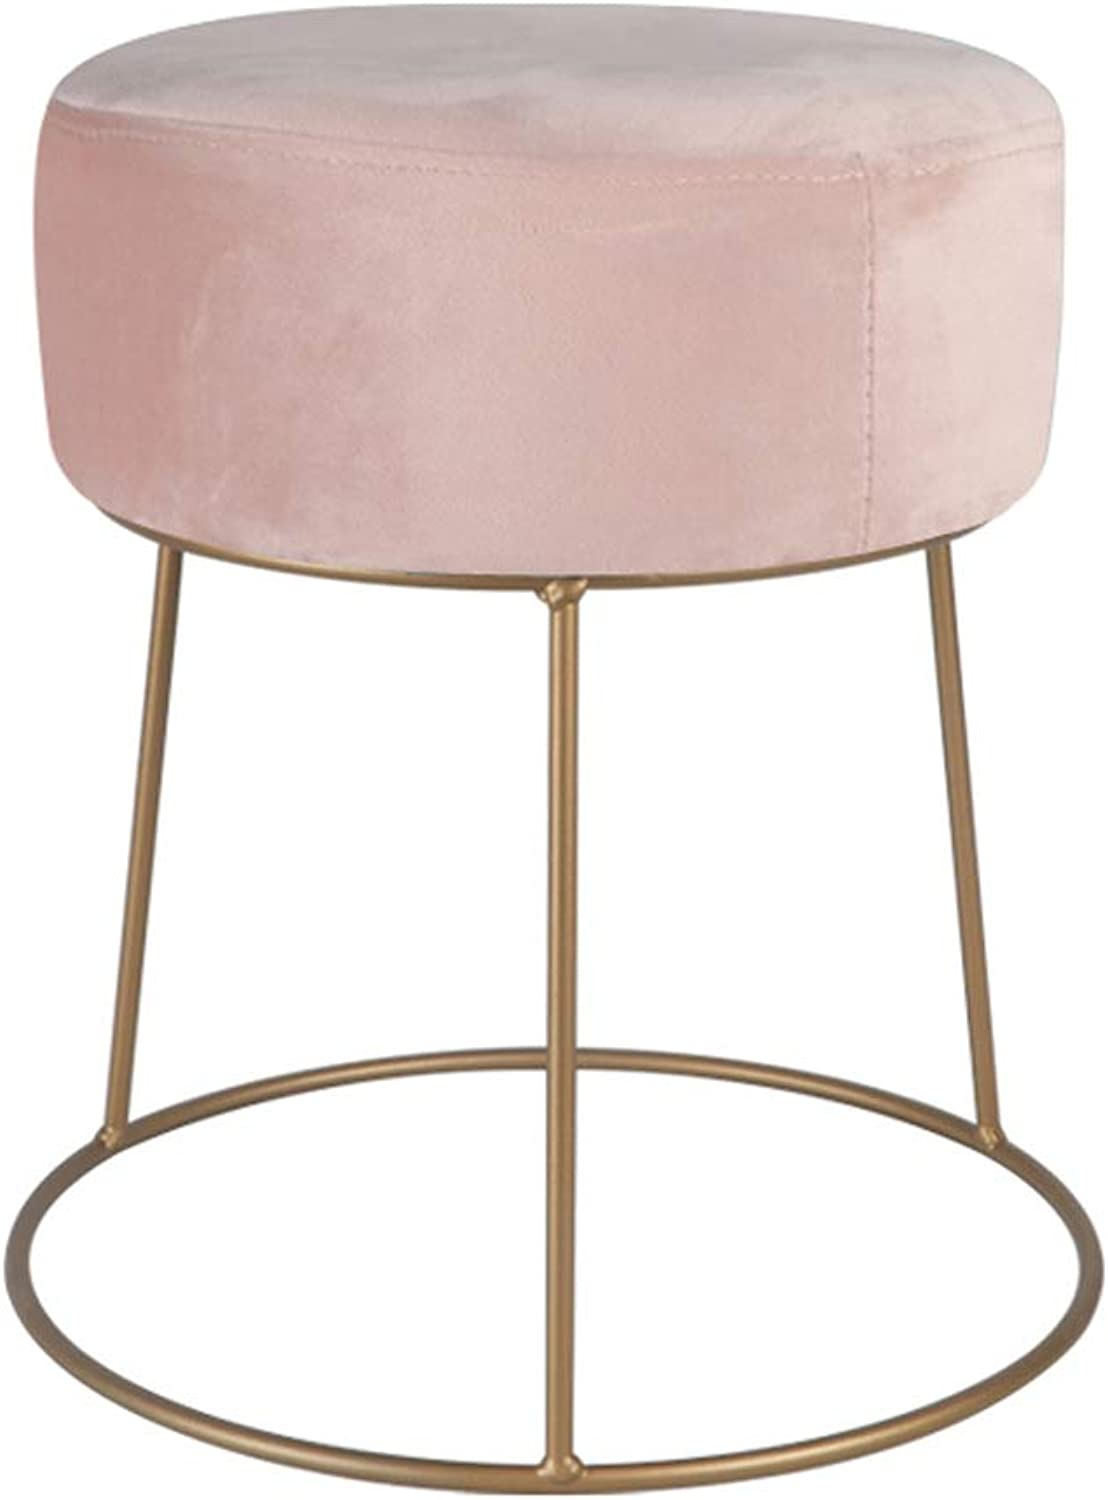 Iron Dressing Stool Round Stool, Simple Home shoes Bench, Stylish Fabric Footstool, Suitable for Living Room, Bedroom, Dining Room (Pink)